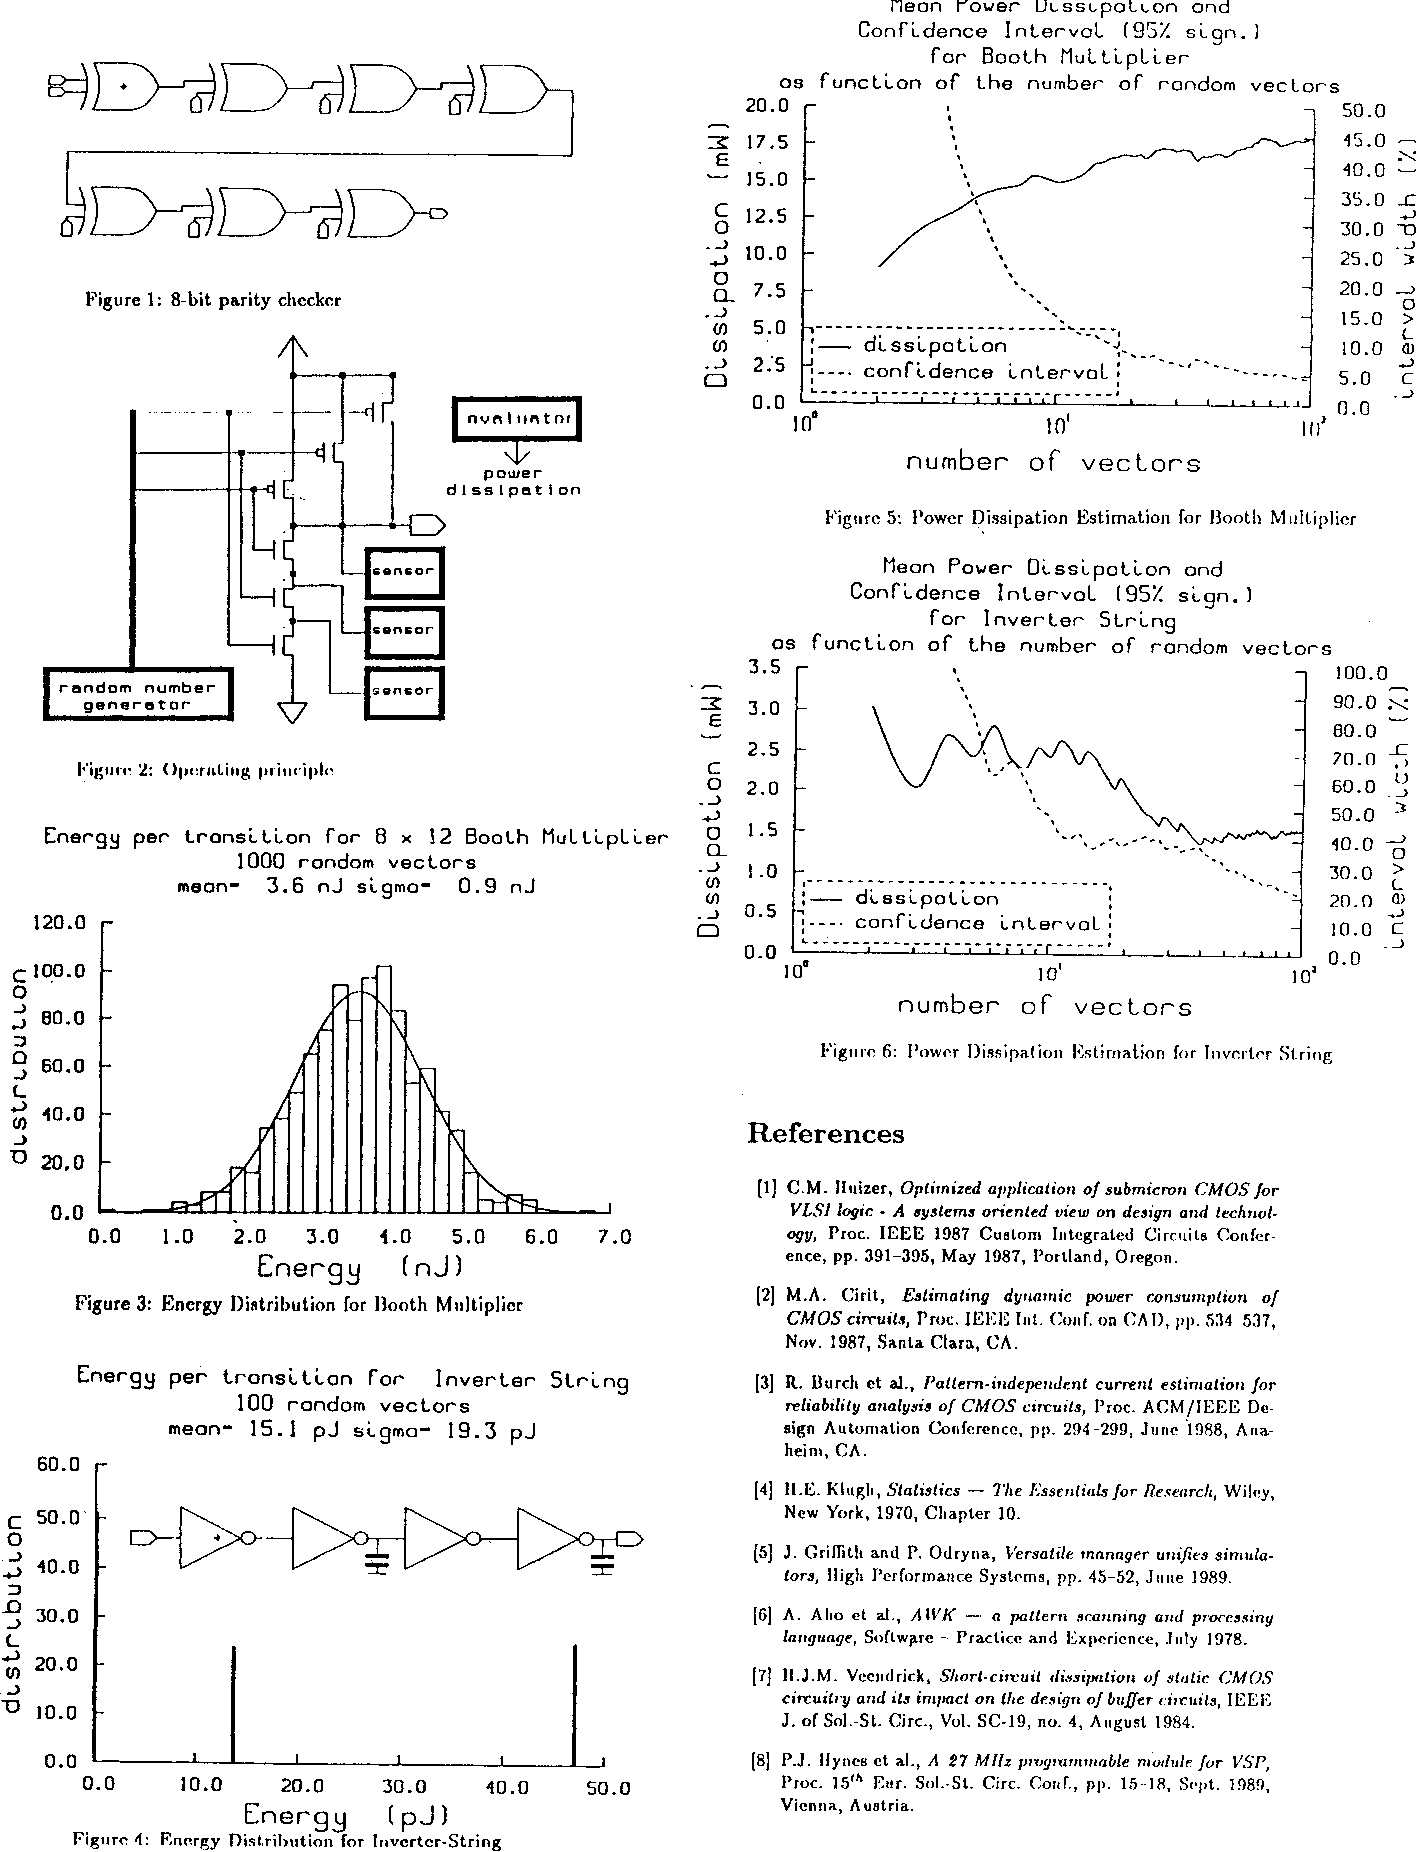 Power Dissipation Analysis Of Cmos Vlsi Circuits By Means Switch Logic Diagram Simulator Figure 3